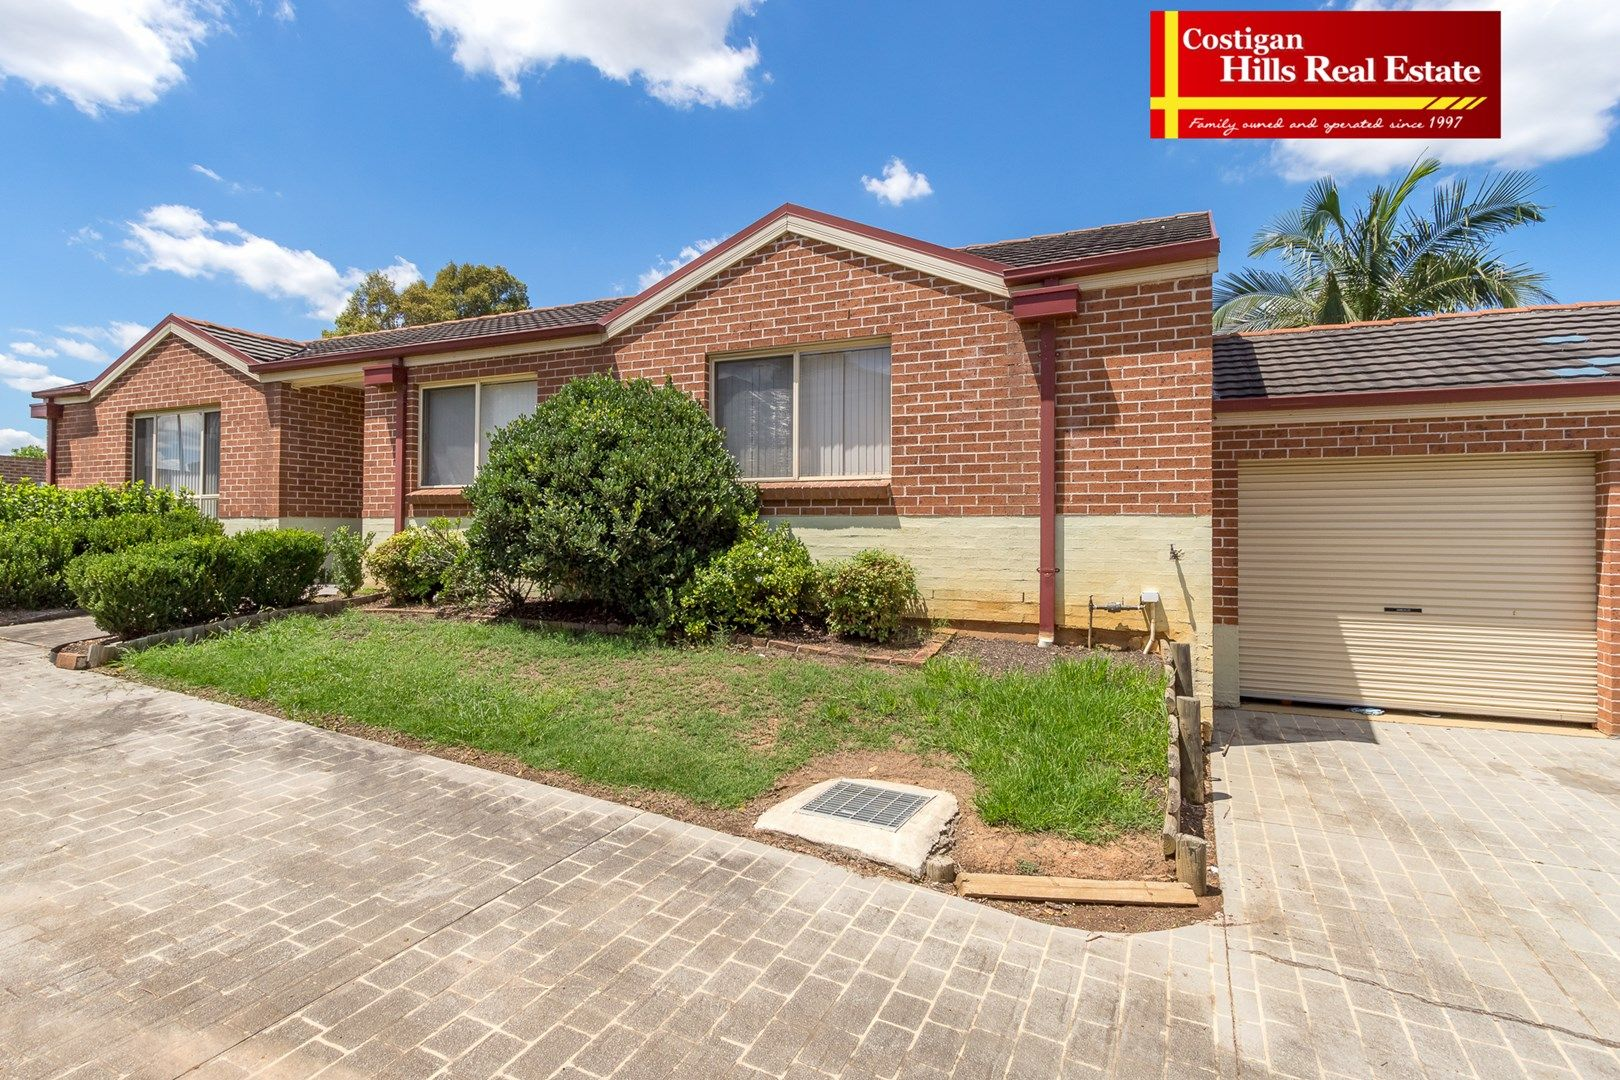 1/70 Bali Drive, Quakers Hill NSW 2763, Image 0